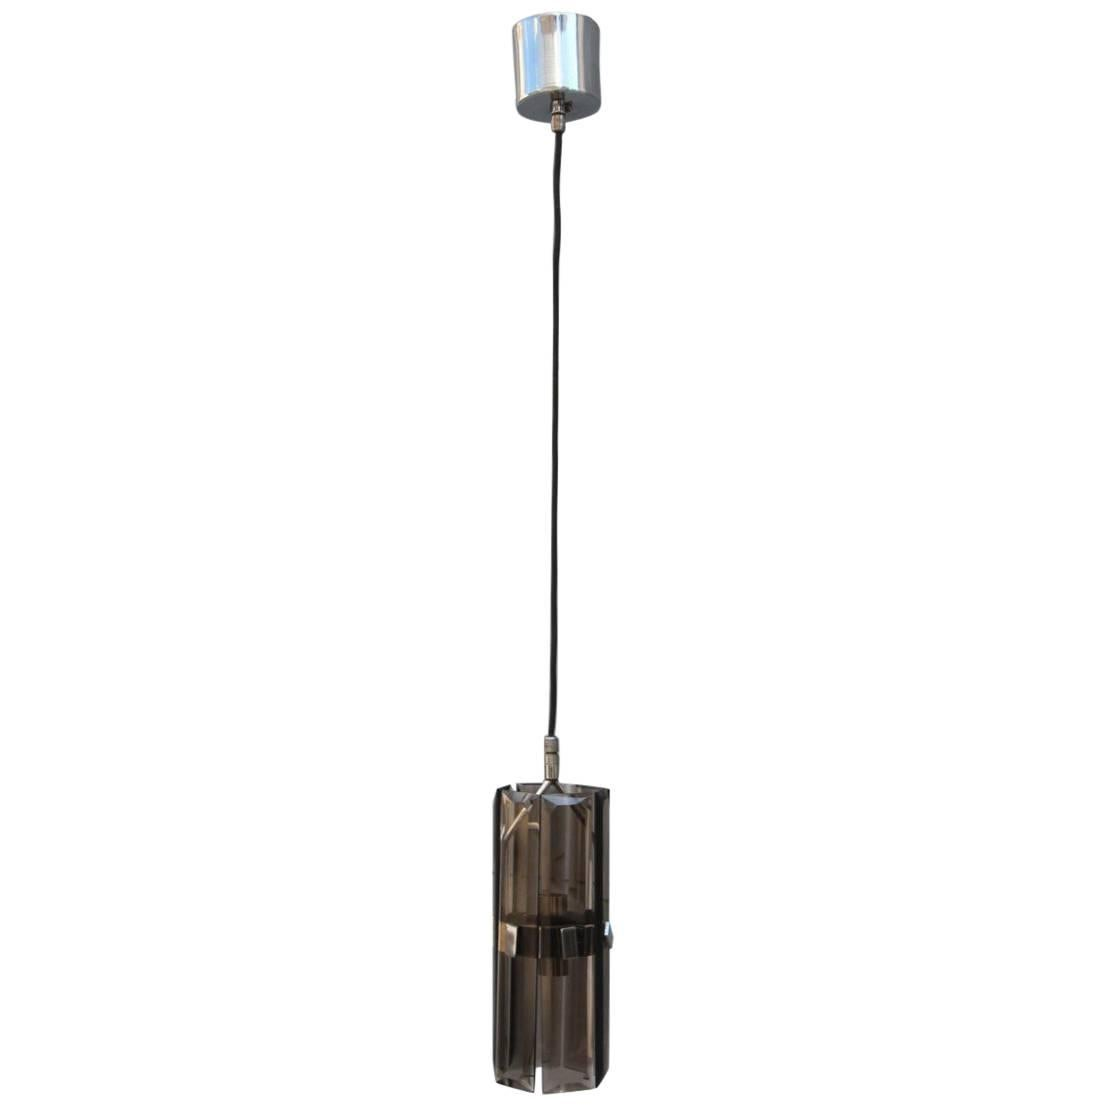 Essential and Minimal Italian Ceiling Light, 1970s Veca Design